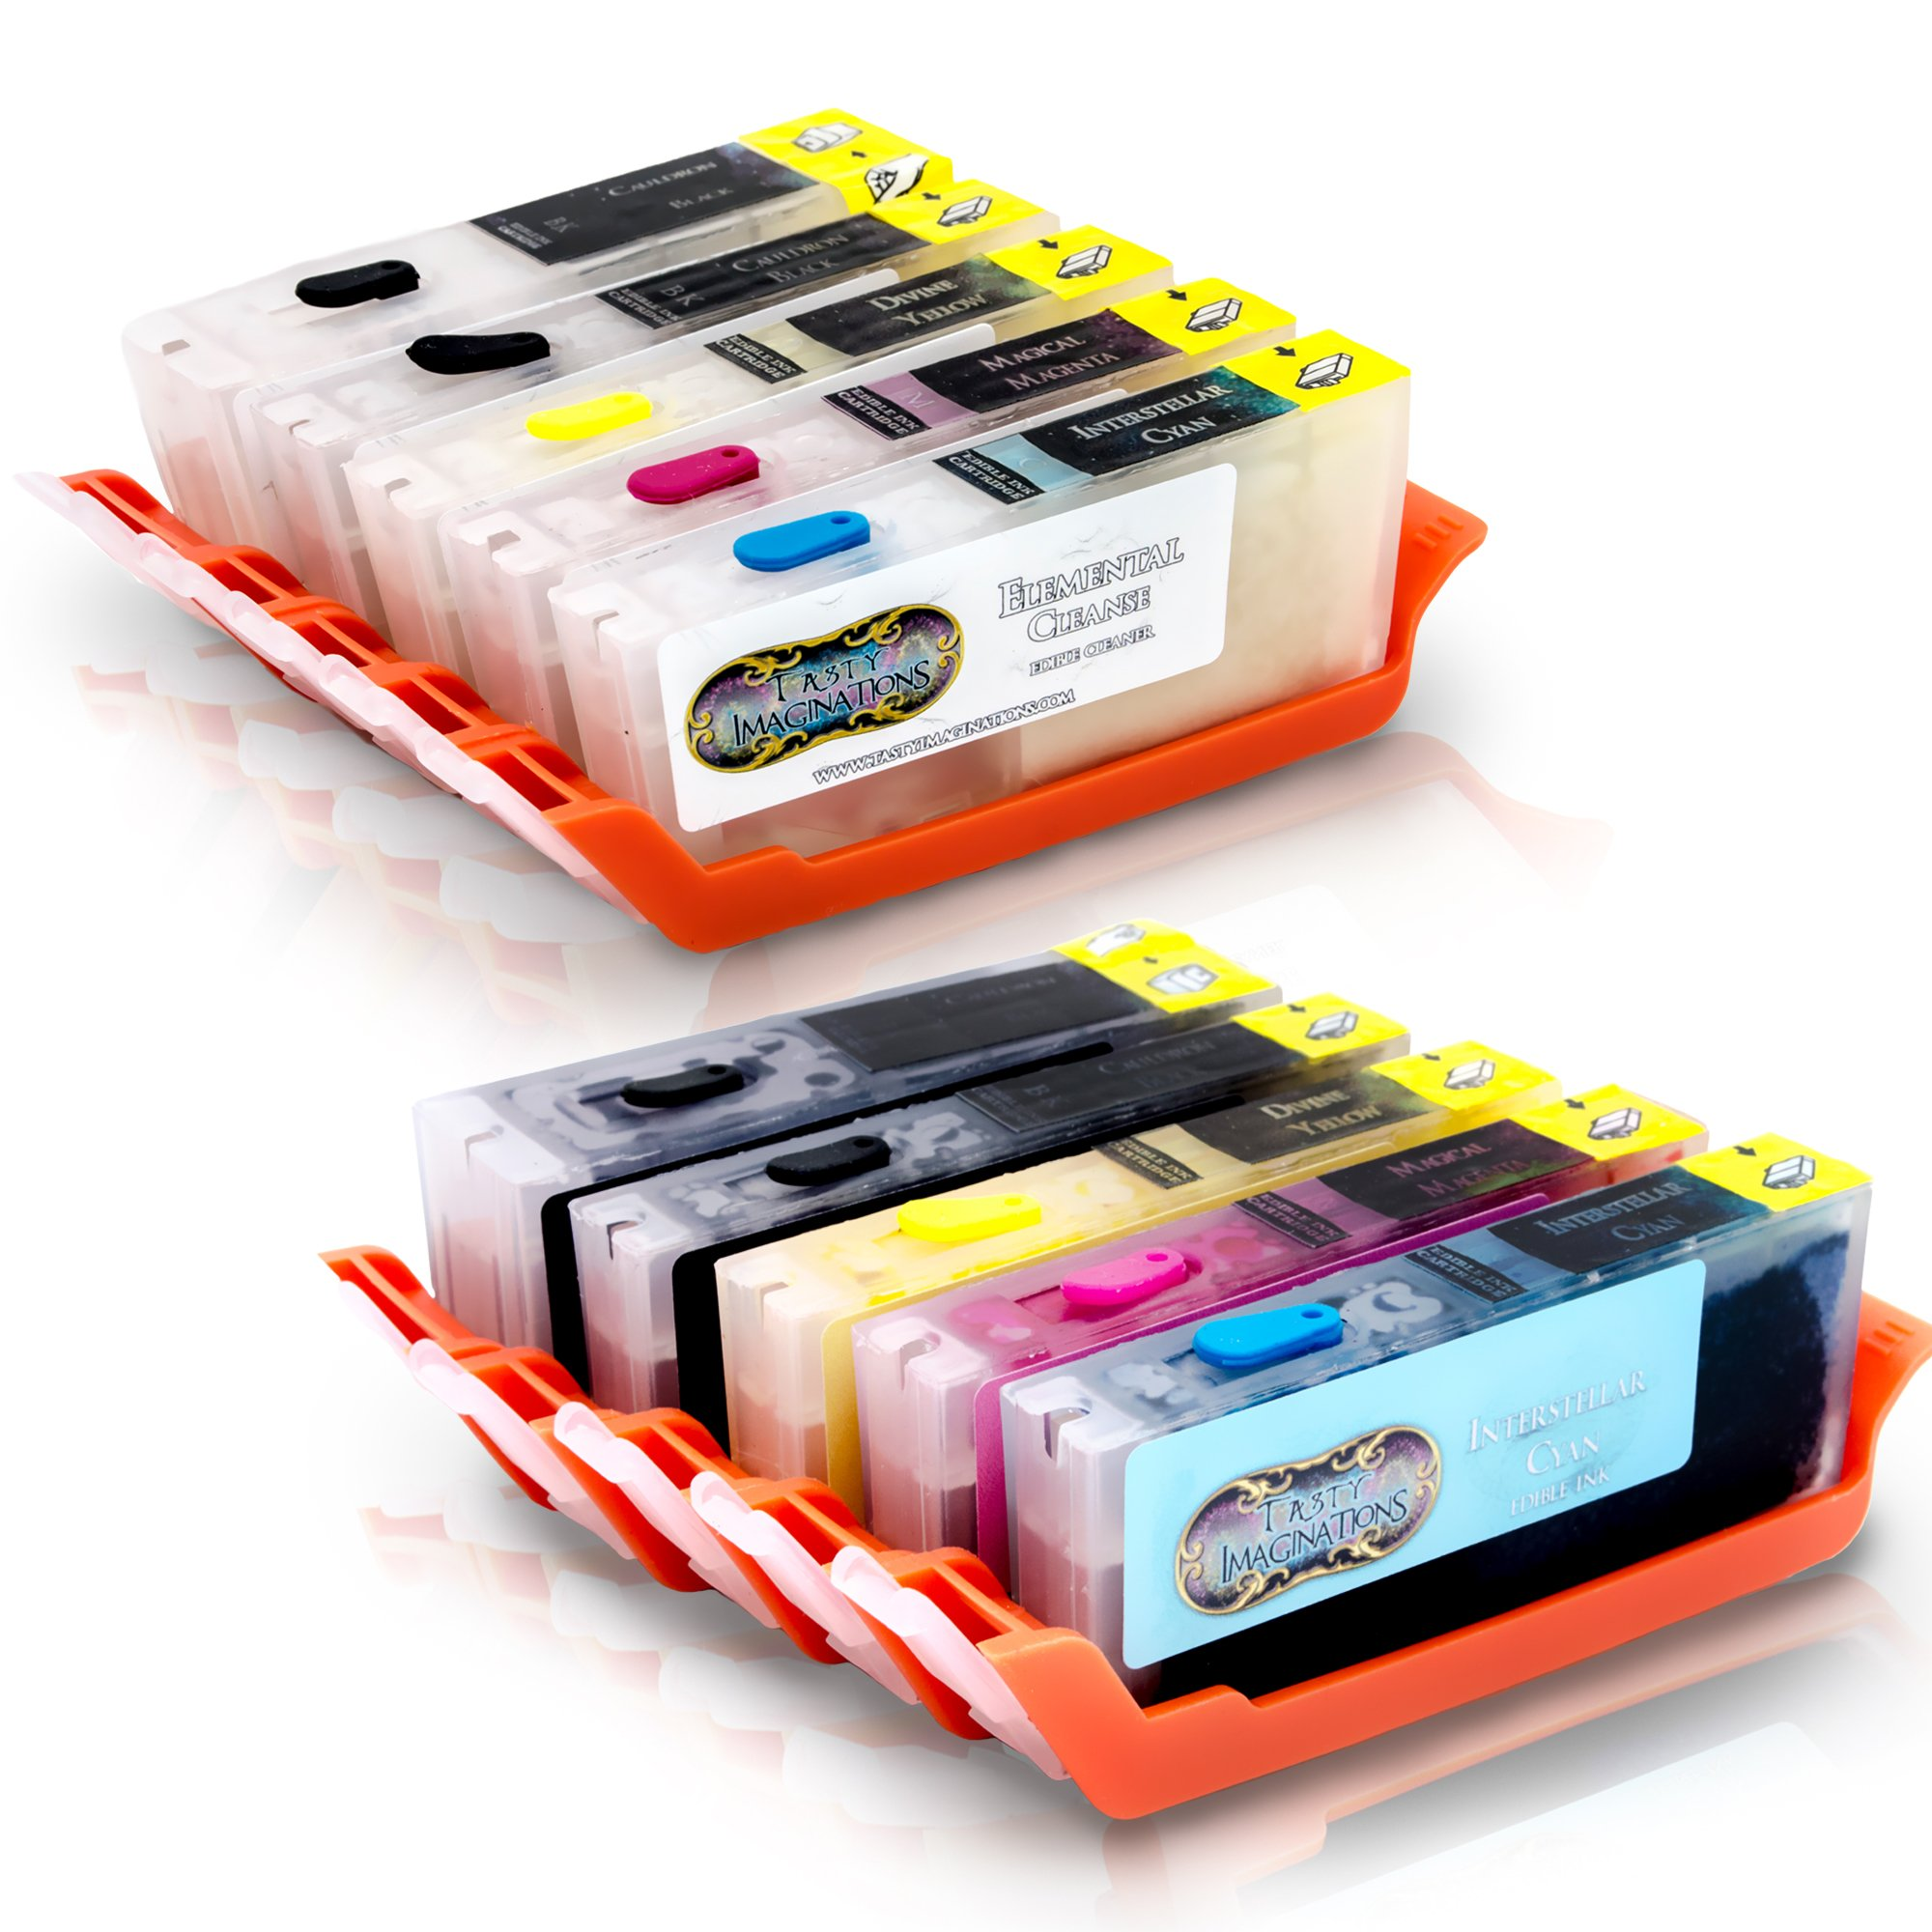 Tasty Imaginations Edible Ink and Cleaning Cartridges for Canon CLI-251 & PGI-250 5 Pack works with MG5420, MG5520, MG6420, MG6620, MX922 Cake Ink FDA Compliant (Combo Pack) by Tasty Imaginations